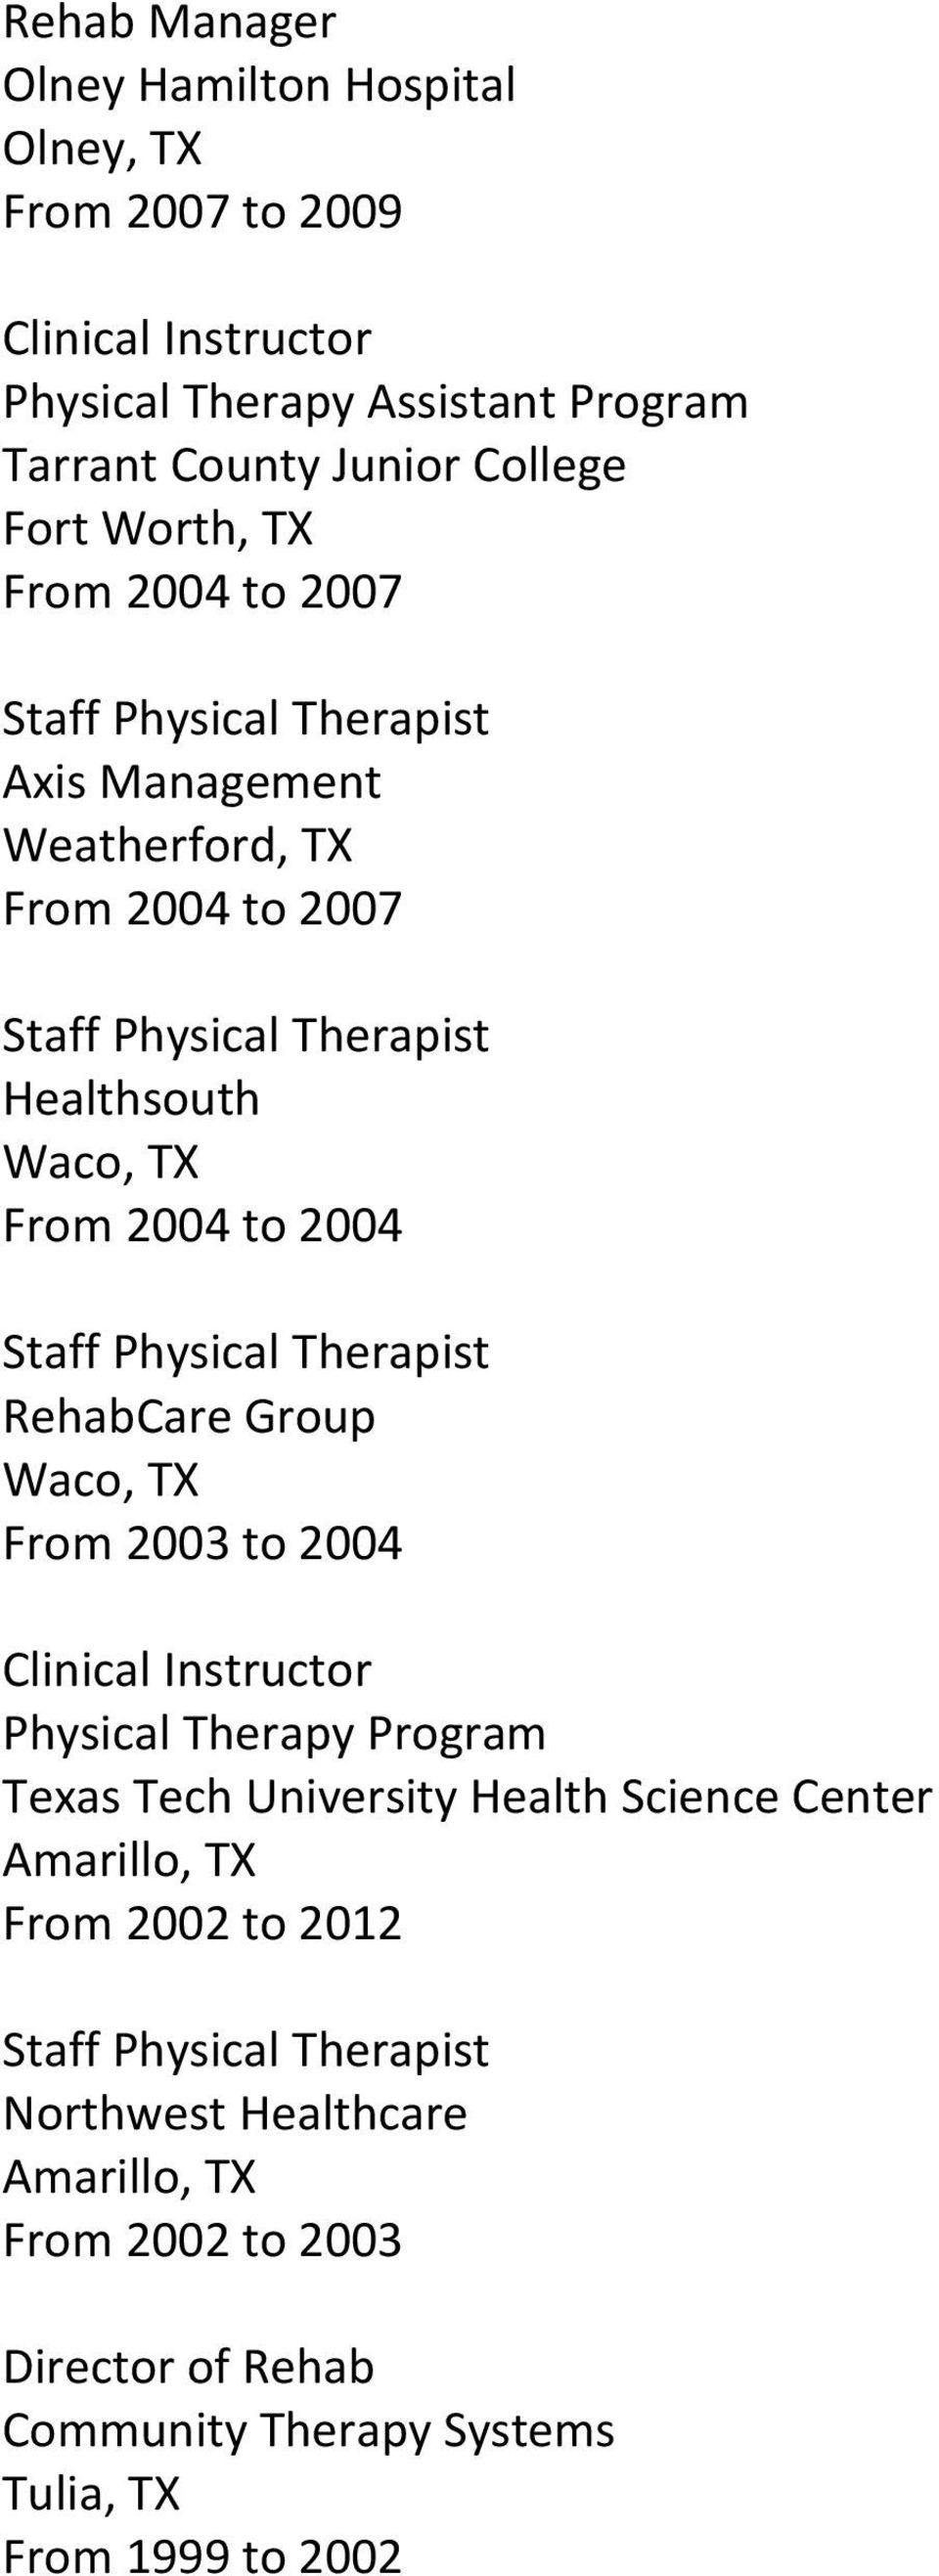 RehabCare Group Waco, TX From 2003 to 2004 Clinical Instructor Physical Therapy Program Texas Tech University Health Science Center